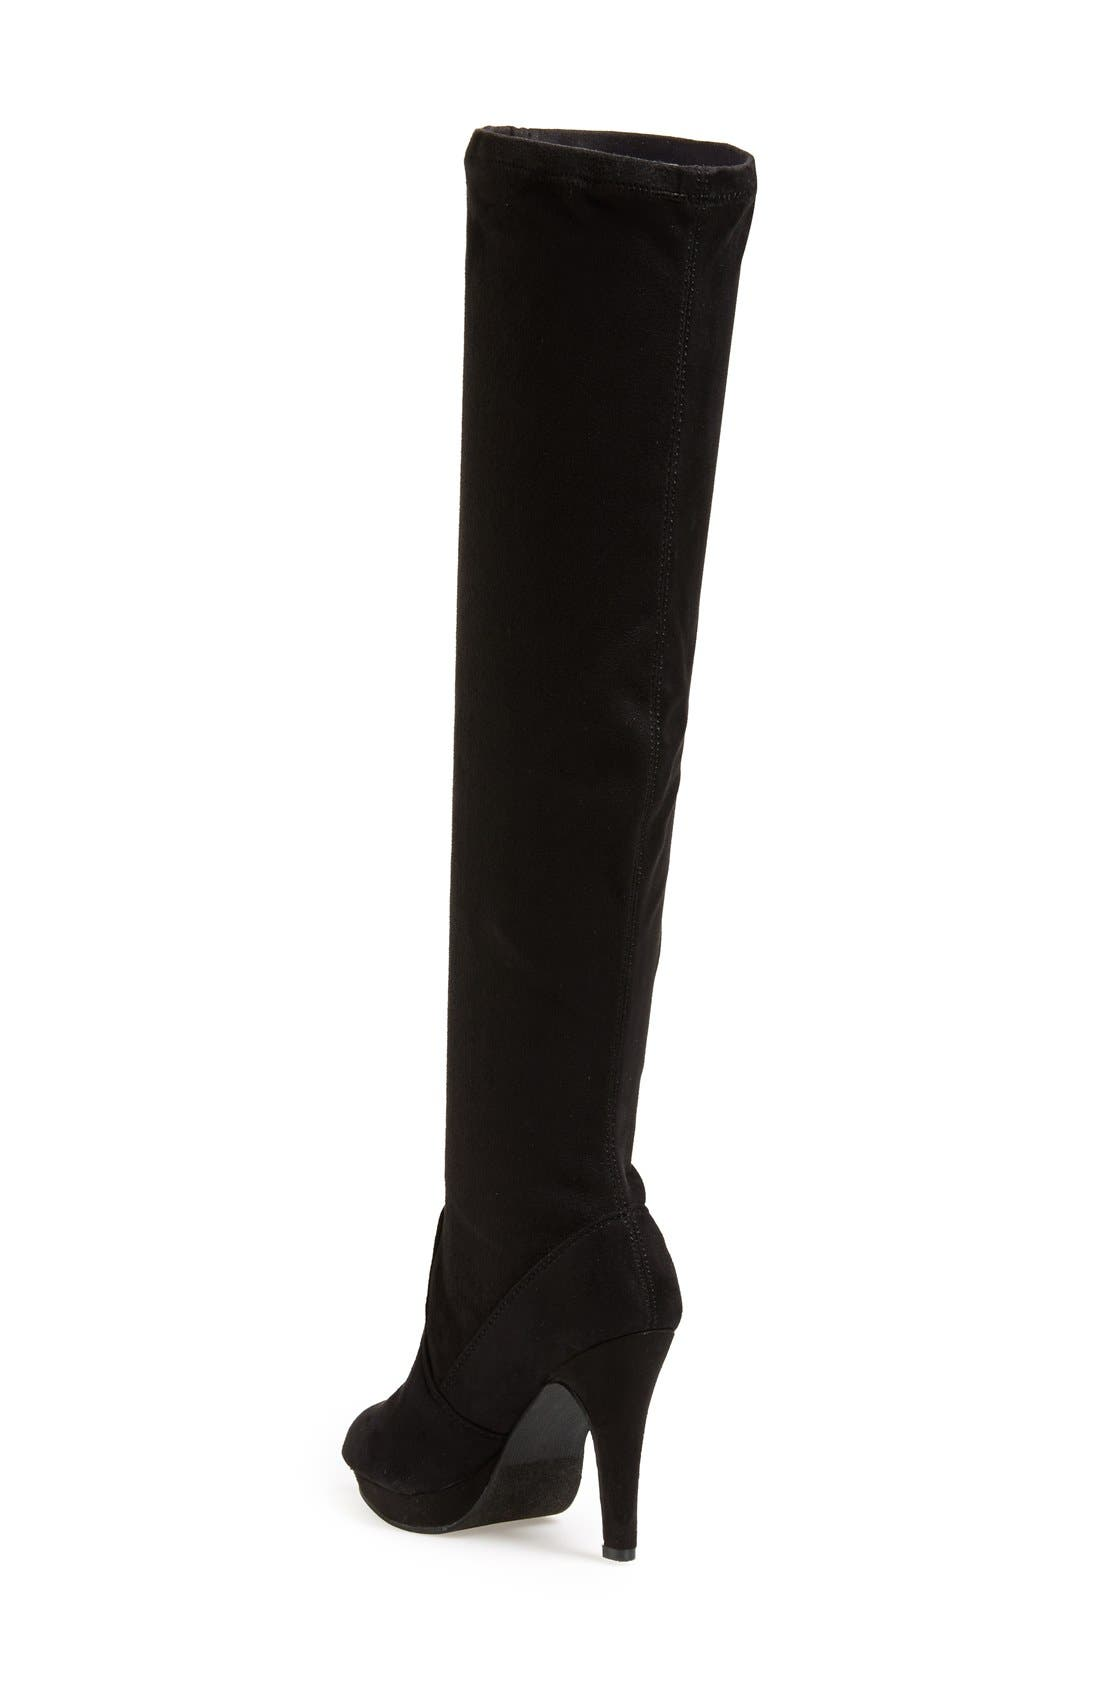 REPORT 'Nadya' Over The Knee Boot,                             Alternate thumbnail 2, color,                             Black